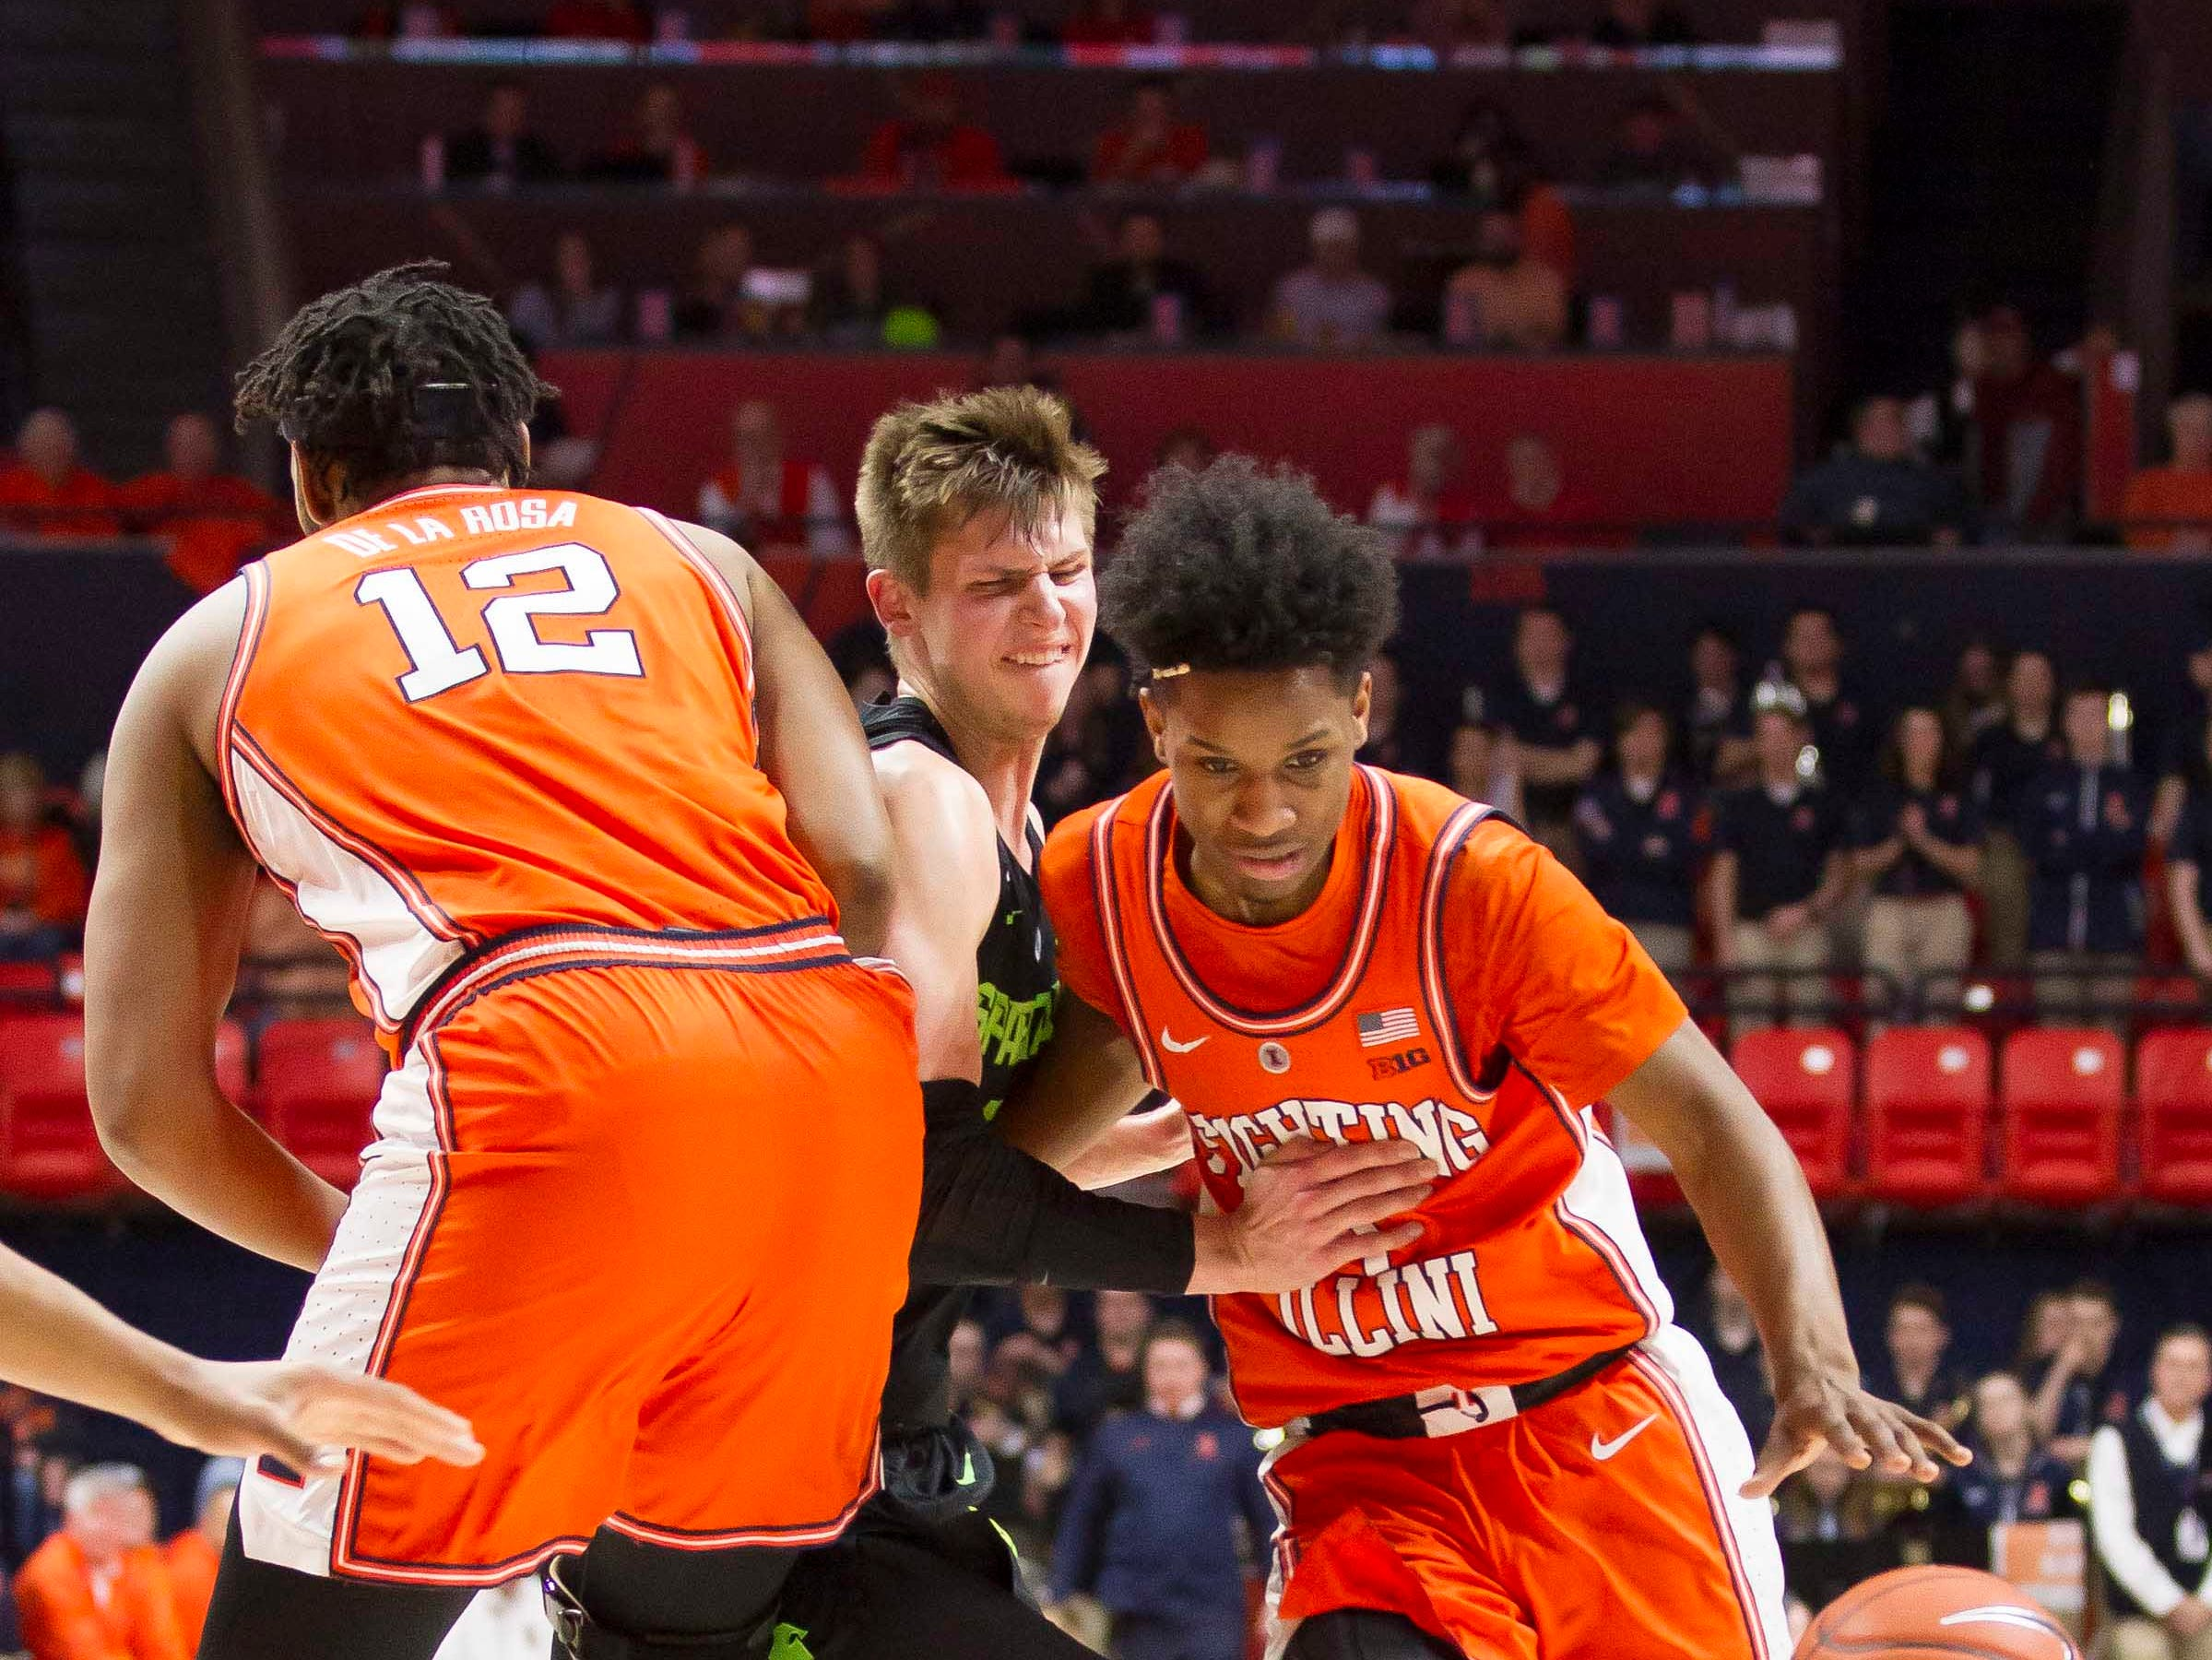 Feb 5, 2019; Champaign, IL, USA; Illinois Fighting Illini center Adonis De La Rosa (12) sets a pick on Michigan State Spartans guard Matt McQuaid (20) asIllinois Fighting Illini guard Trent Frazier (1) drives to the basket during the first half at State Farm Center. Mandatory Credit: Mike Granse-USA TODAY Sports